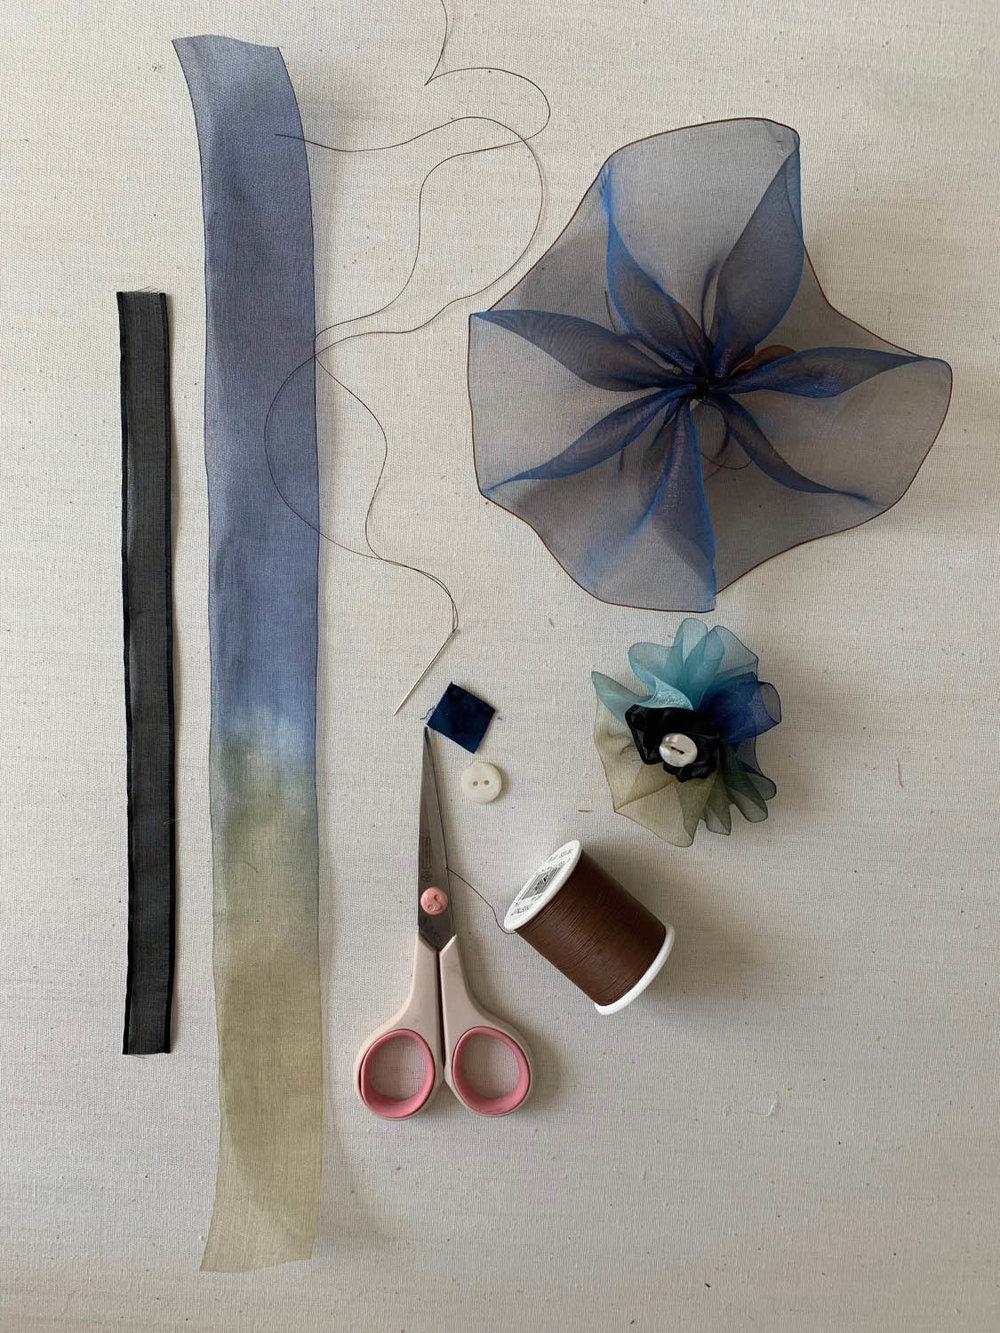 Black ribbon, variegated blue and green silk ribbon, scissors, needle with thread, spool of thread and finished Step by Step Simple Ribbon Flower for Embellishing